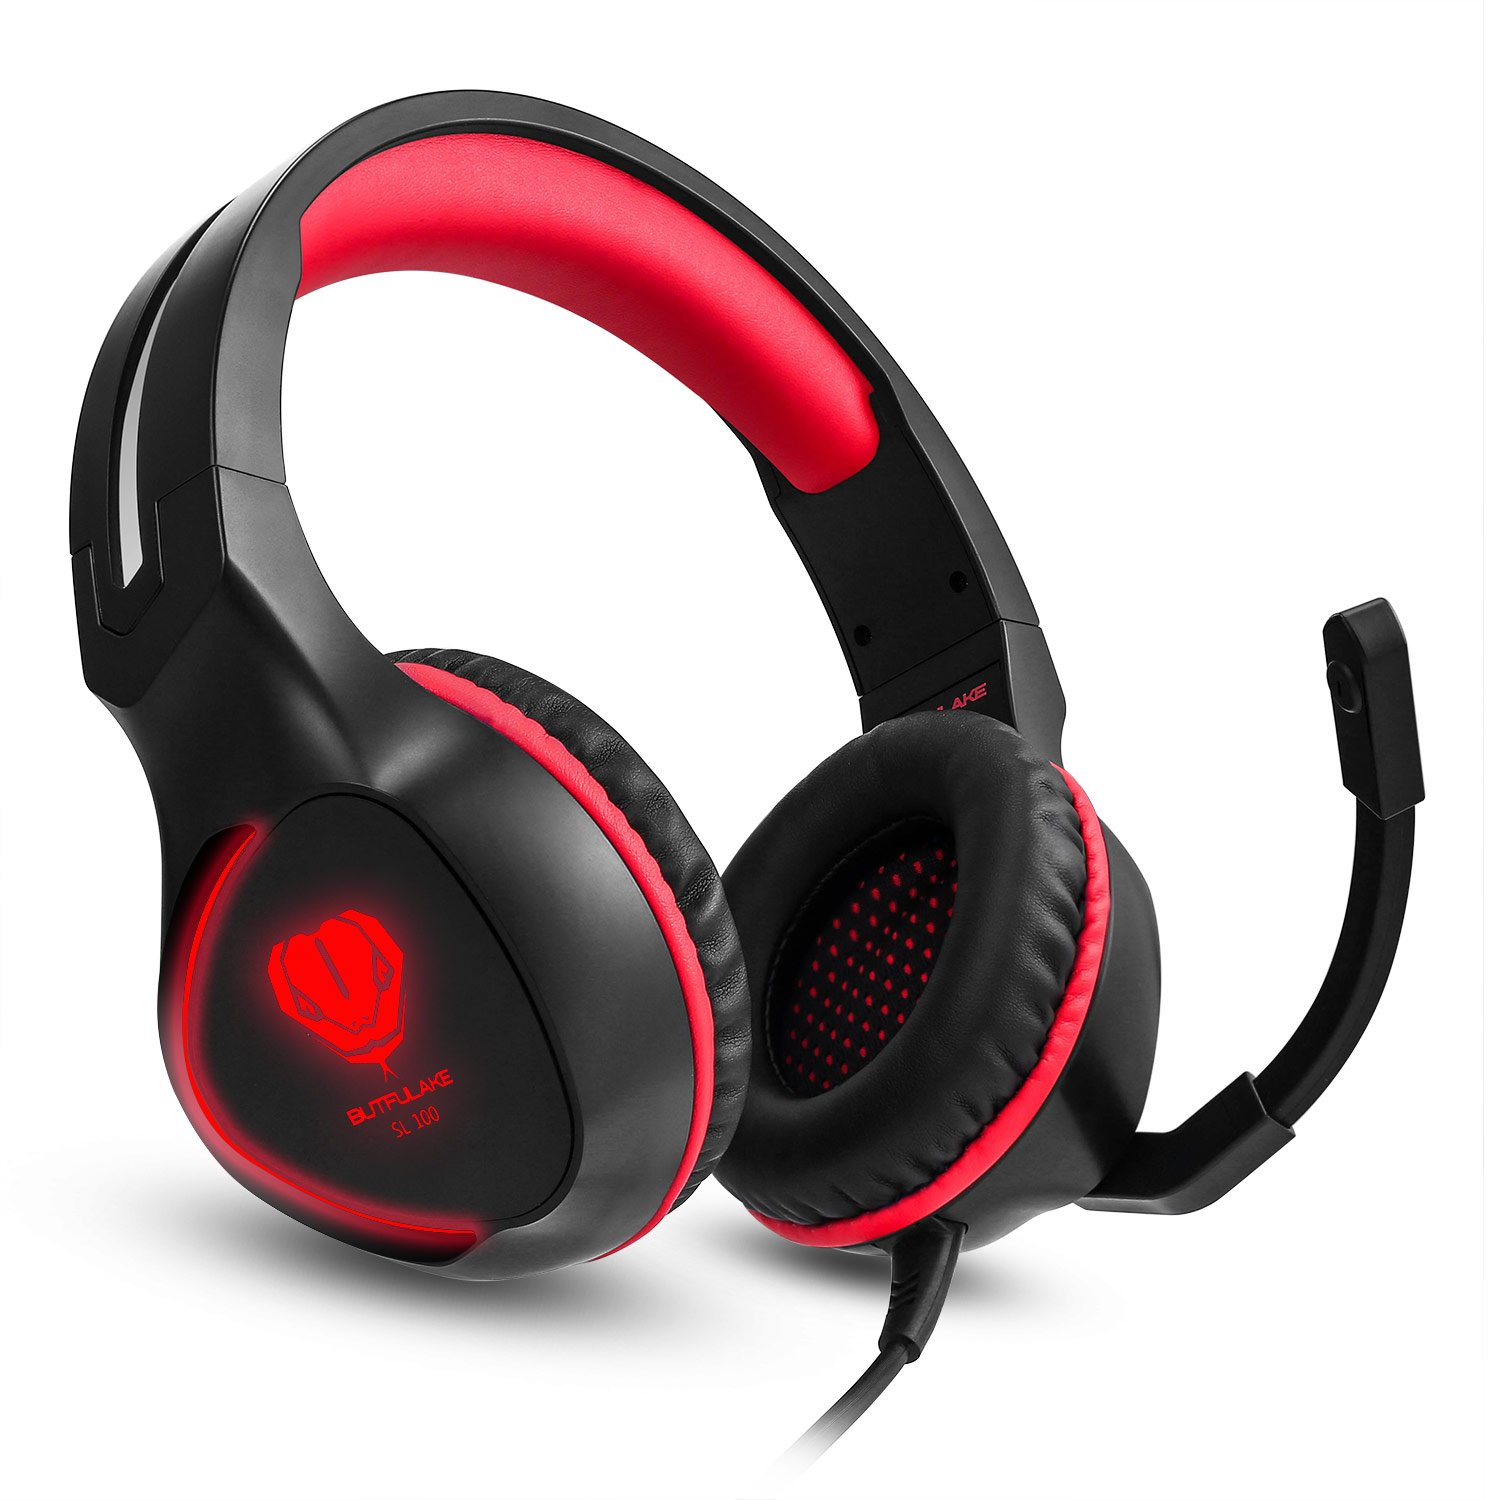 Xbox One Controller Mac Stereo Gamer Headphones 3.5mm Over-Ear Headphones with Mic Headset Gaming for PS4 PC Earphone for Laptop Red Wired Noise Isolation